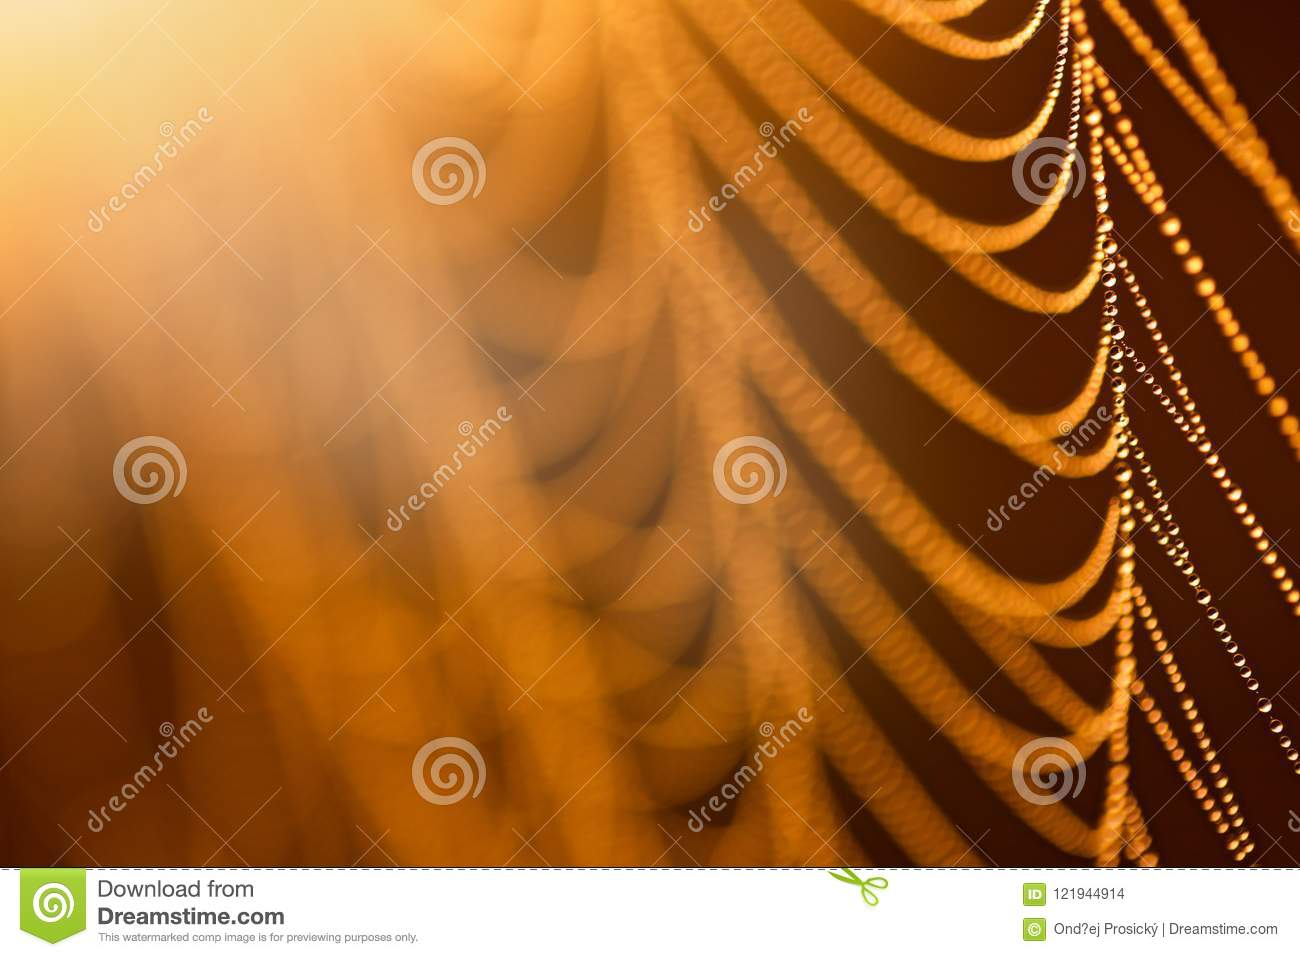 Water drops on a cobweb in the sunlight, yellow abstract background. Sunrise in the nature, morning light.